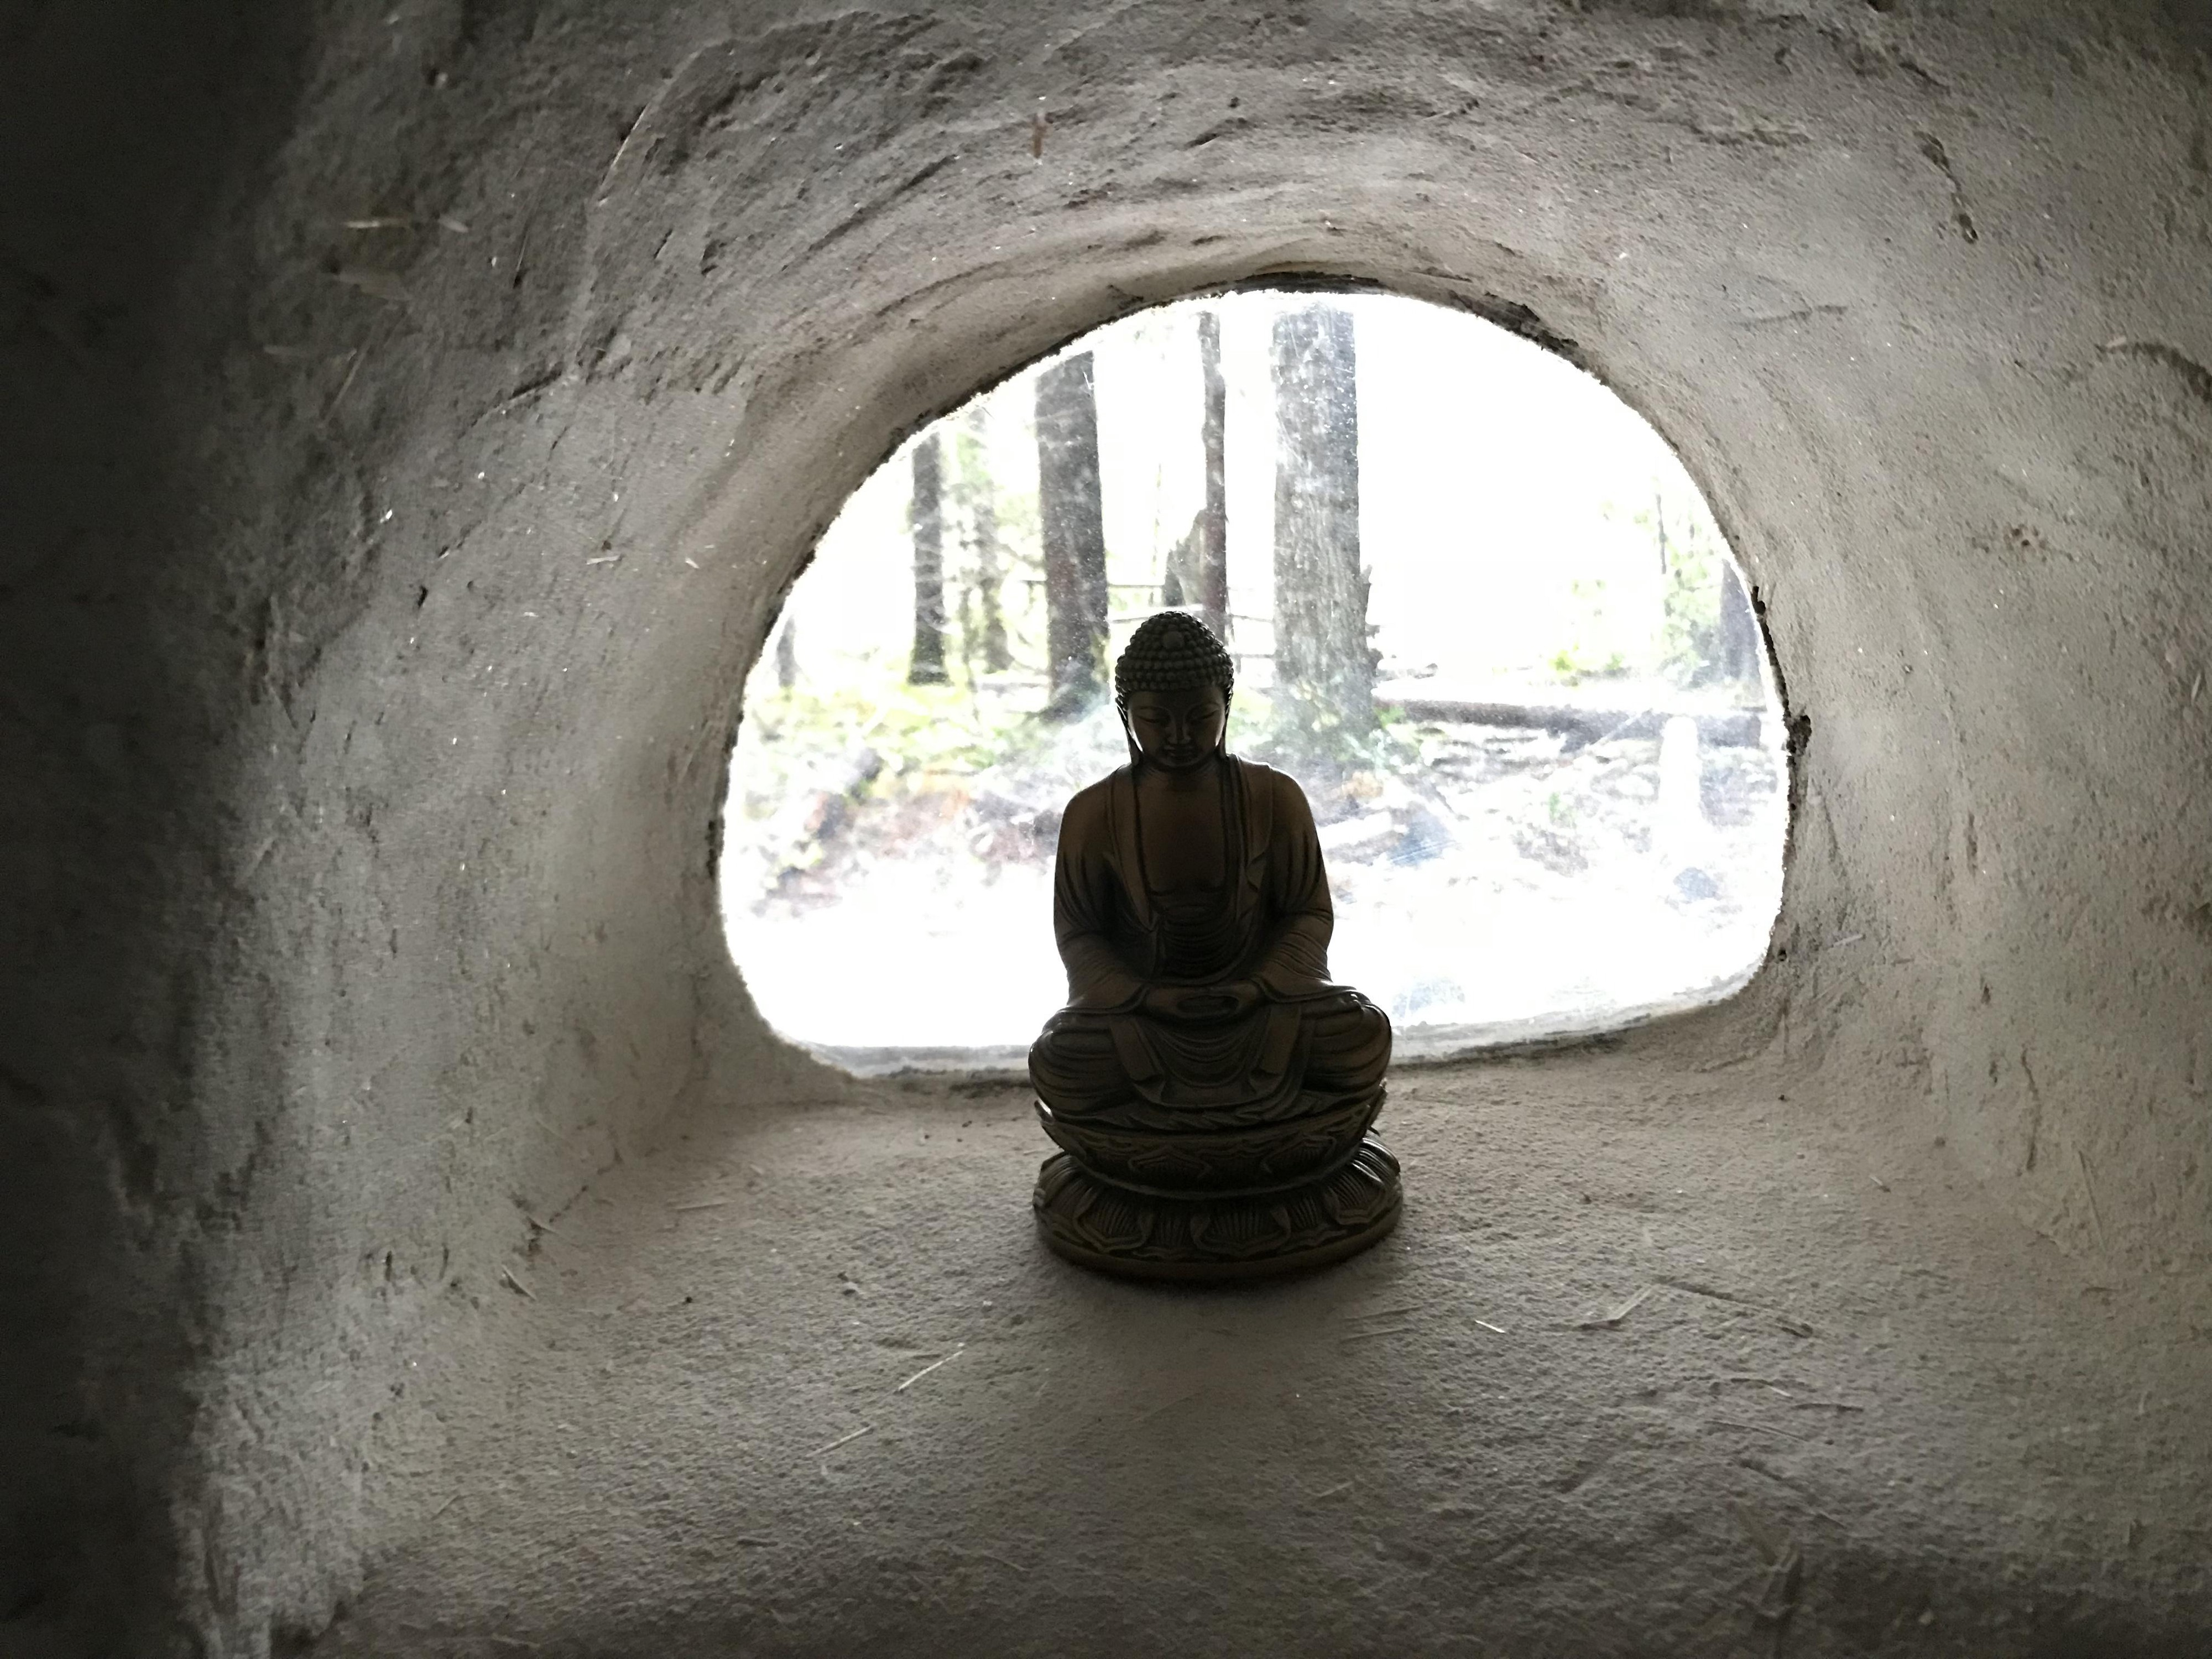 a moment of presence — meditating at the entrance to a cave